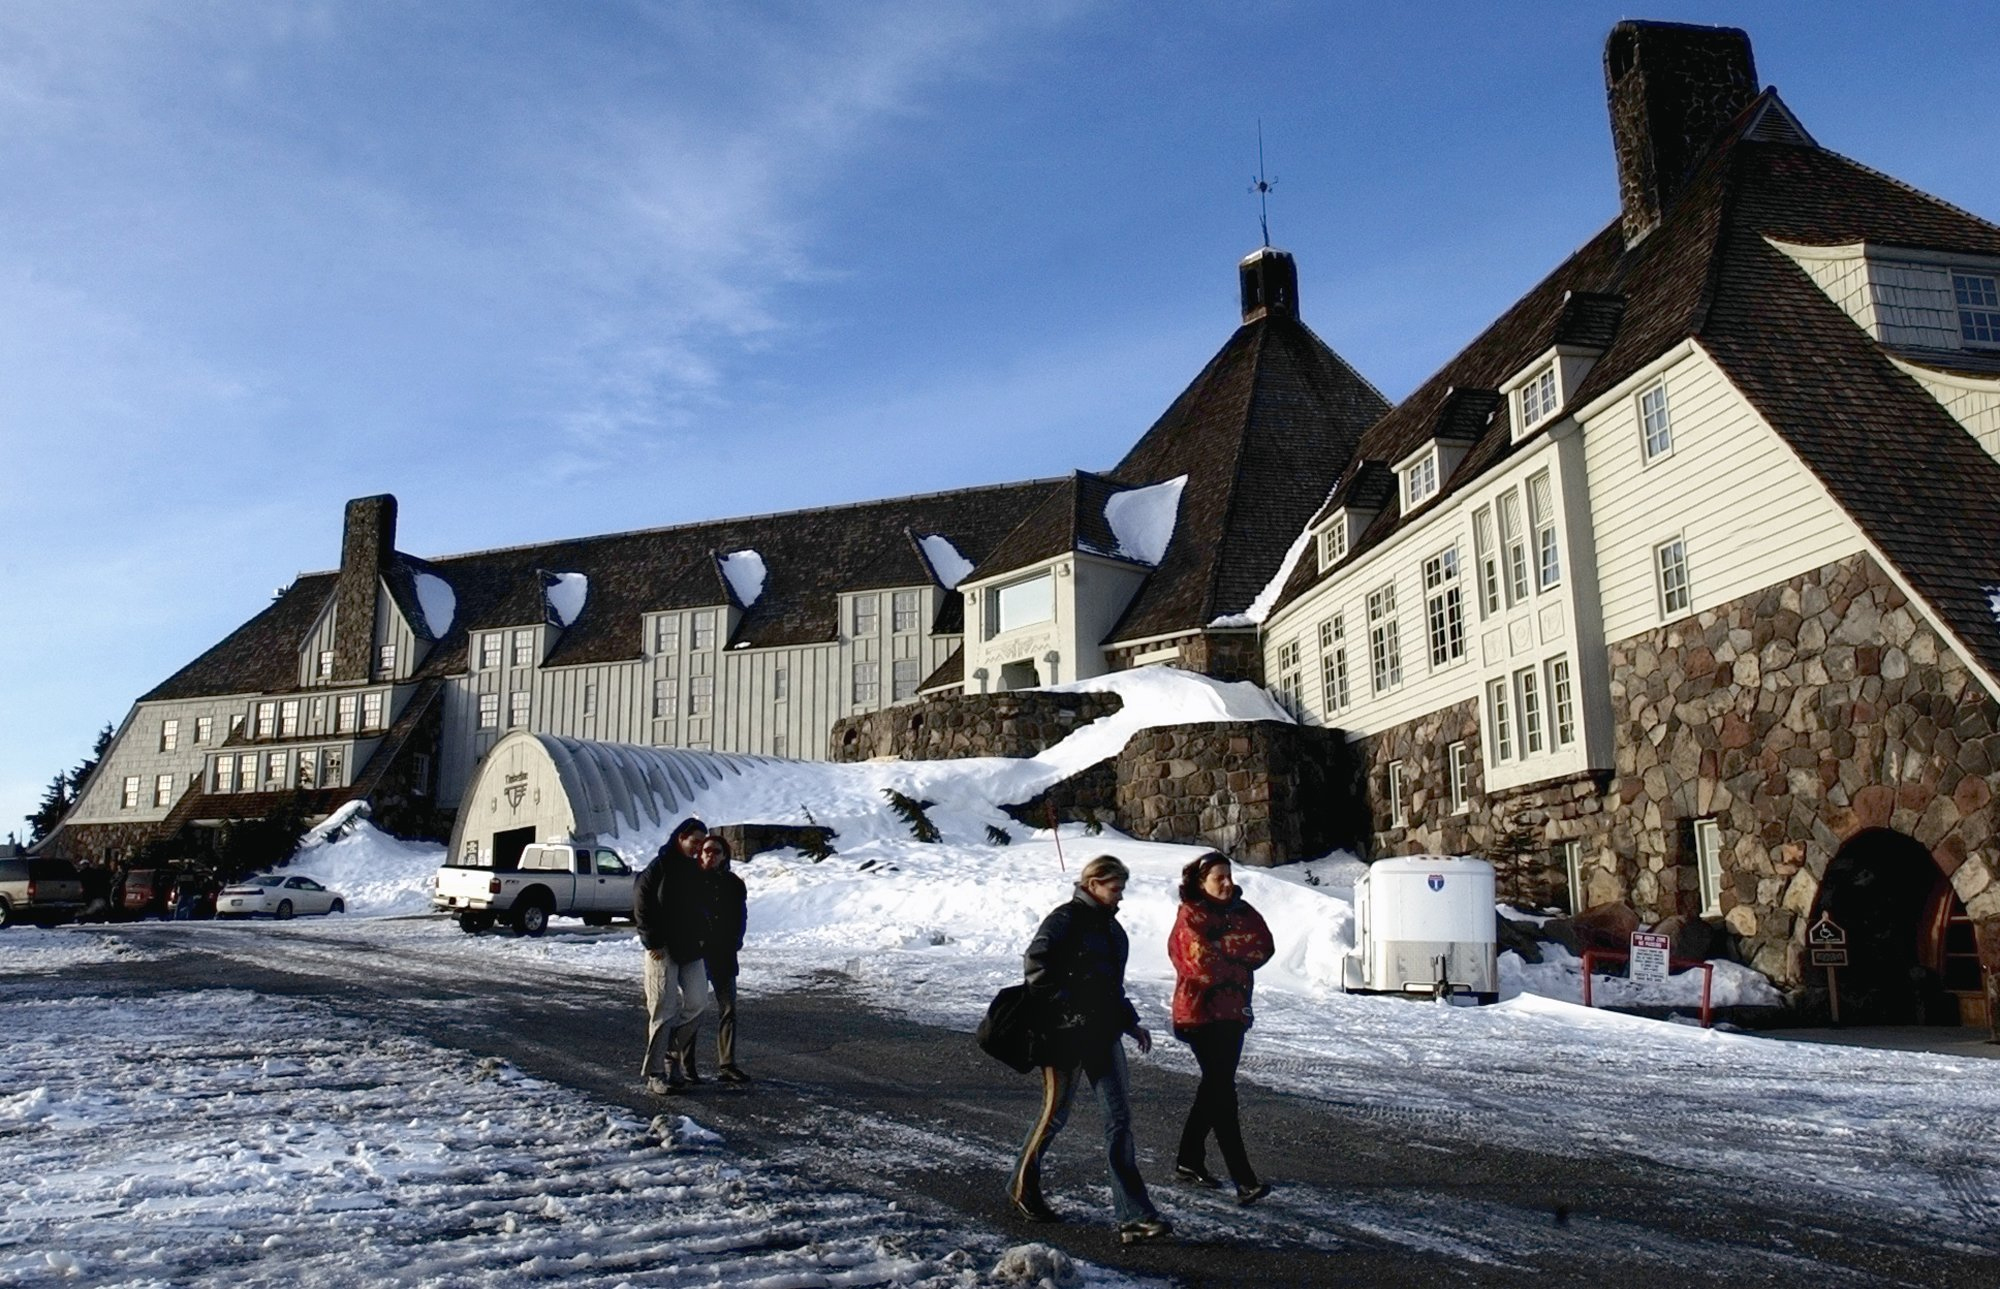 ** ADVANCE FOR WEEKEND OF DEC 27-28 ** Visitors stroll past the front of Timberline Lodge, on Mount Hood, Ore., Tuesday, Dec. 2, 2003. Timberline Lodge is on the National Register of Historic Places. (AP Photo/Statesman Journal, Timothy J. Gonzalez)